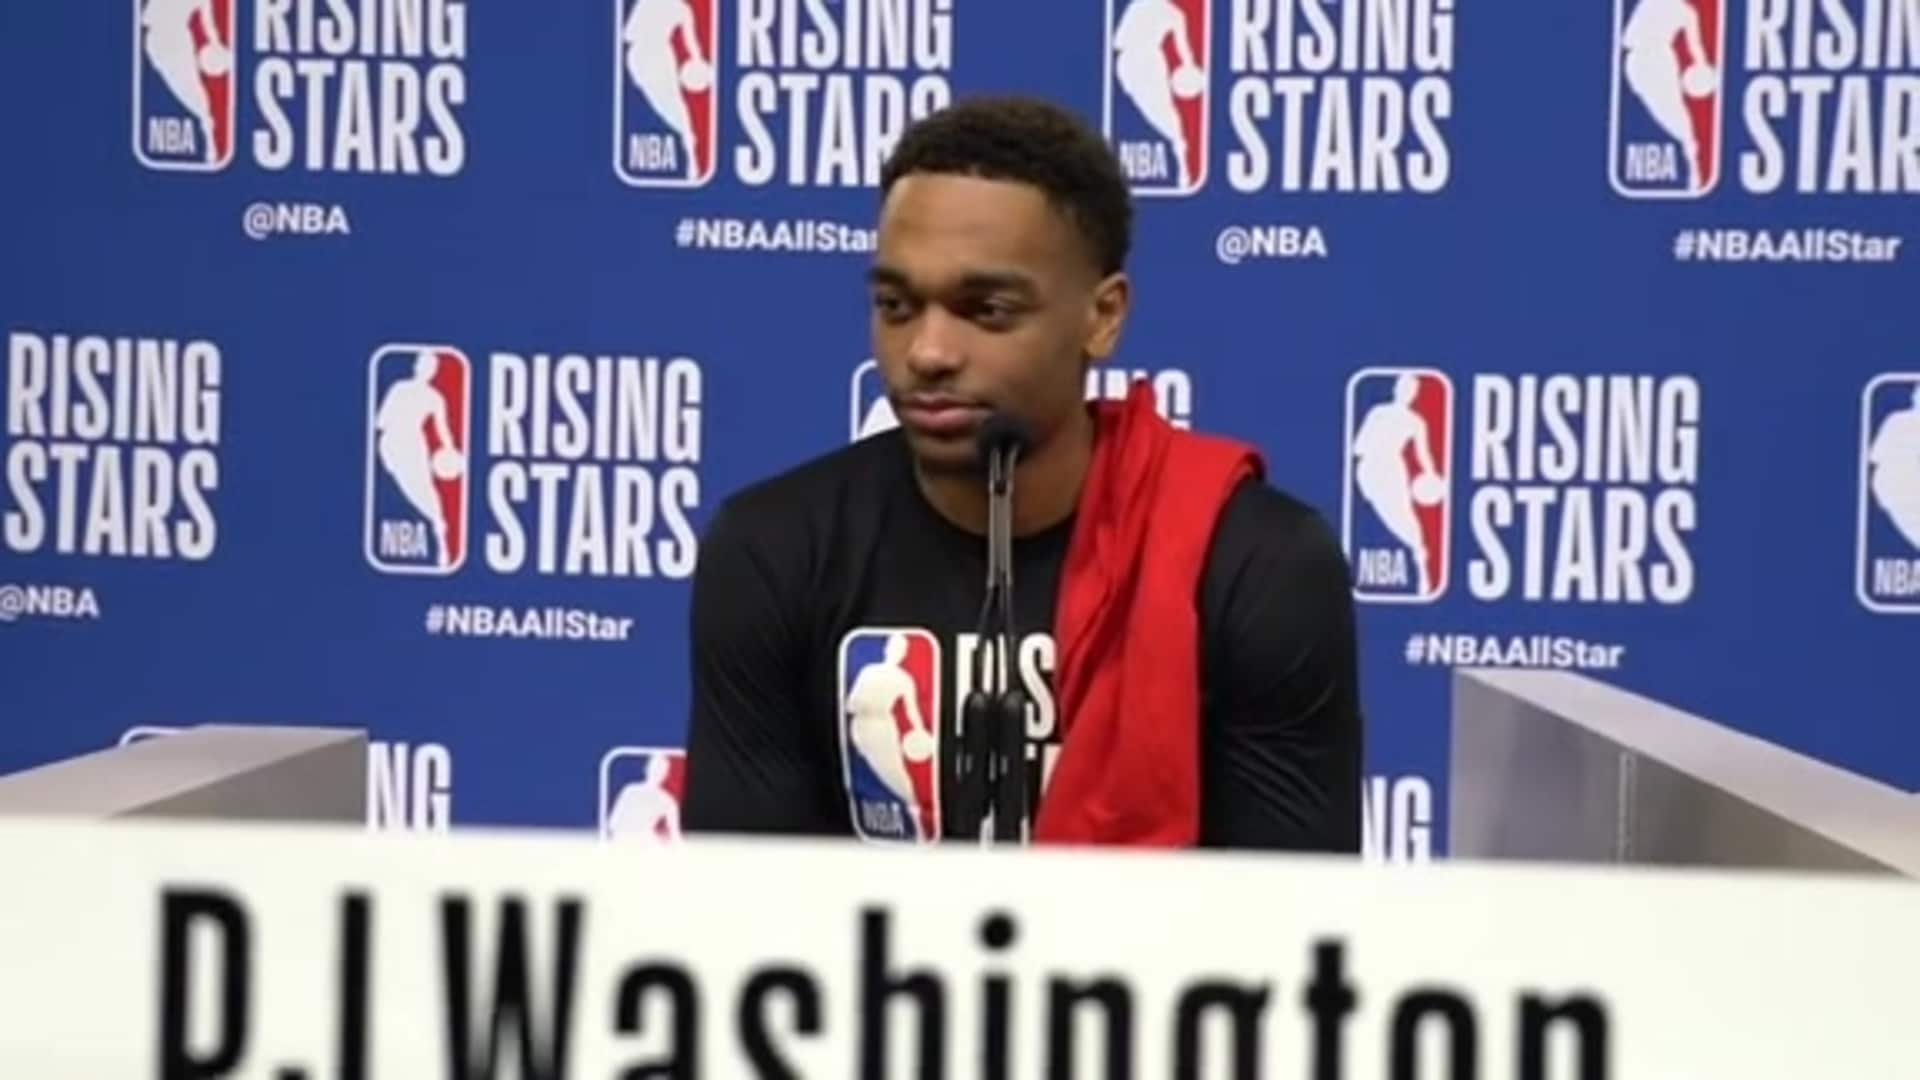 Rising Stars Media Availability | PJ Washington - 2/14/20